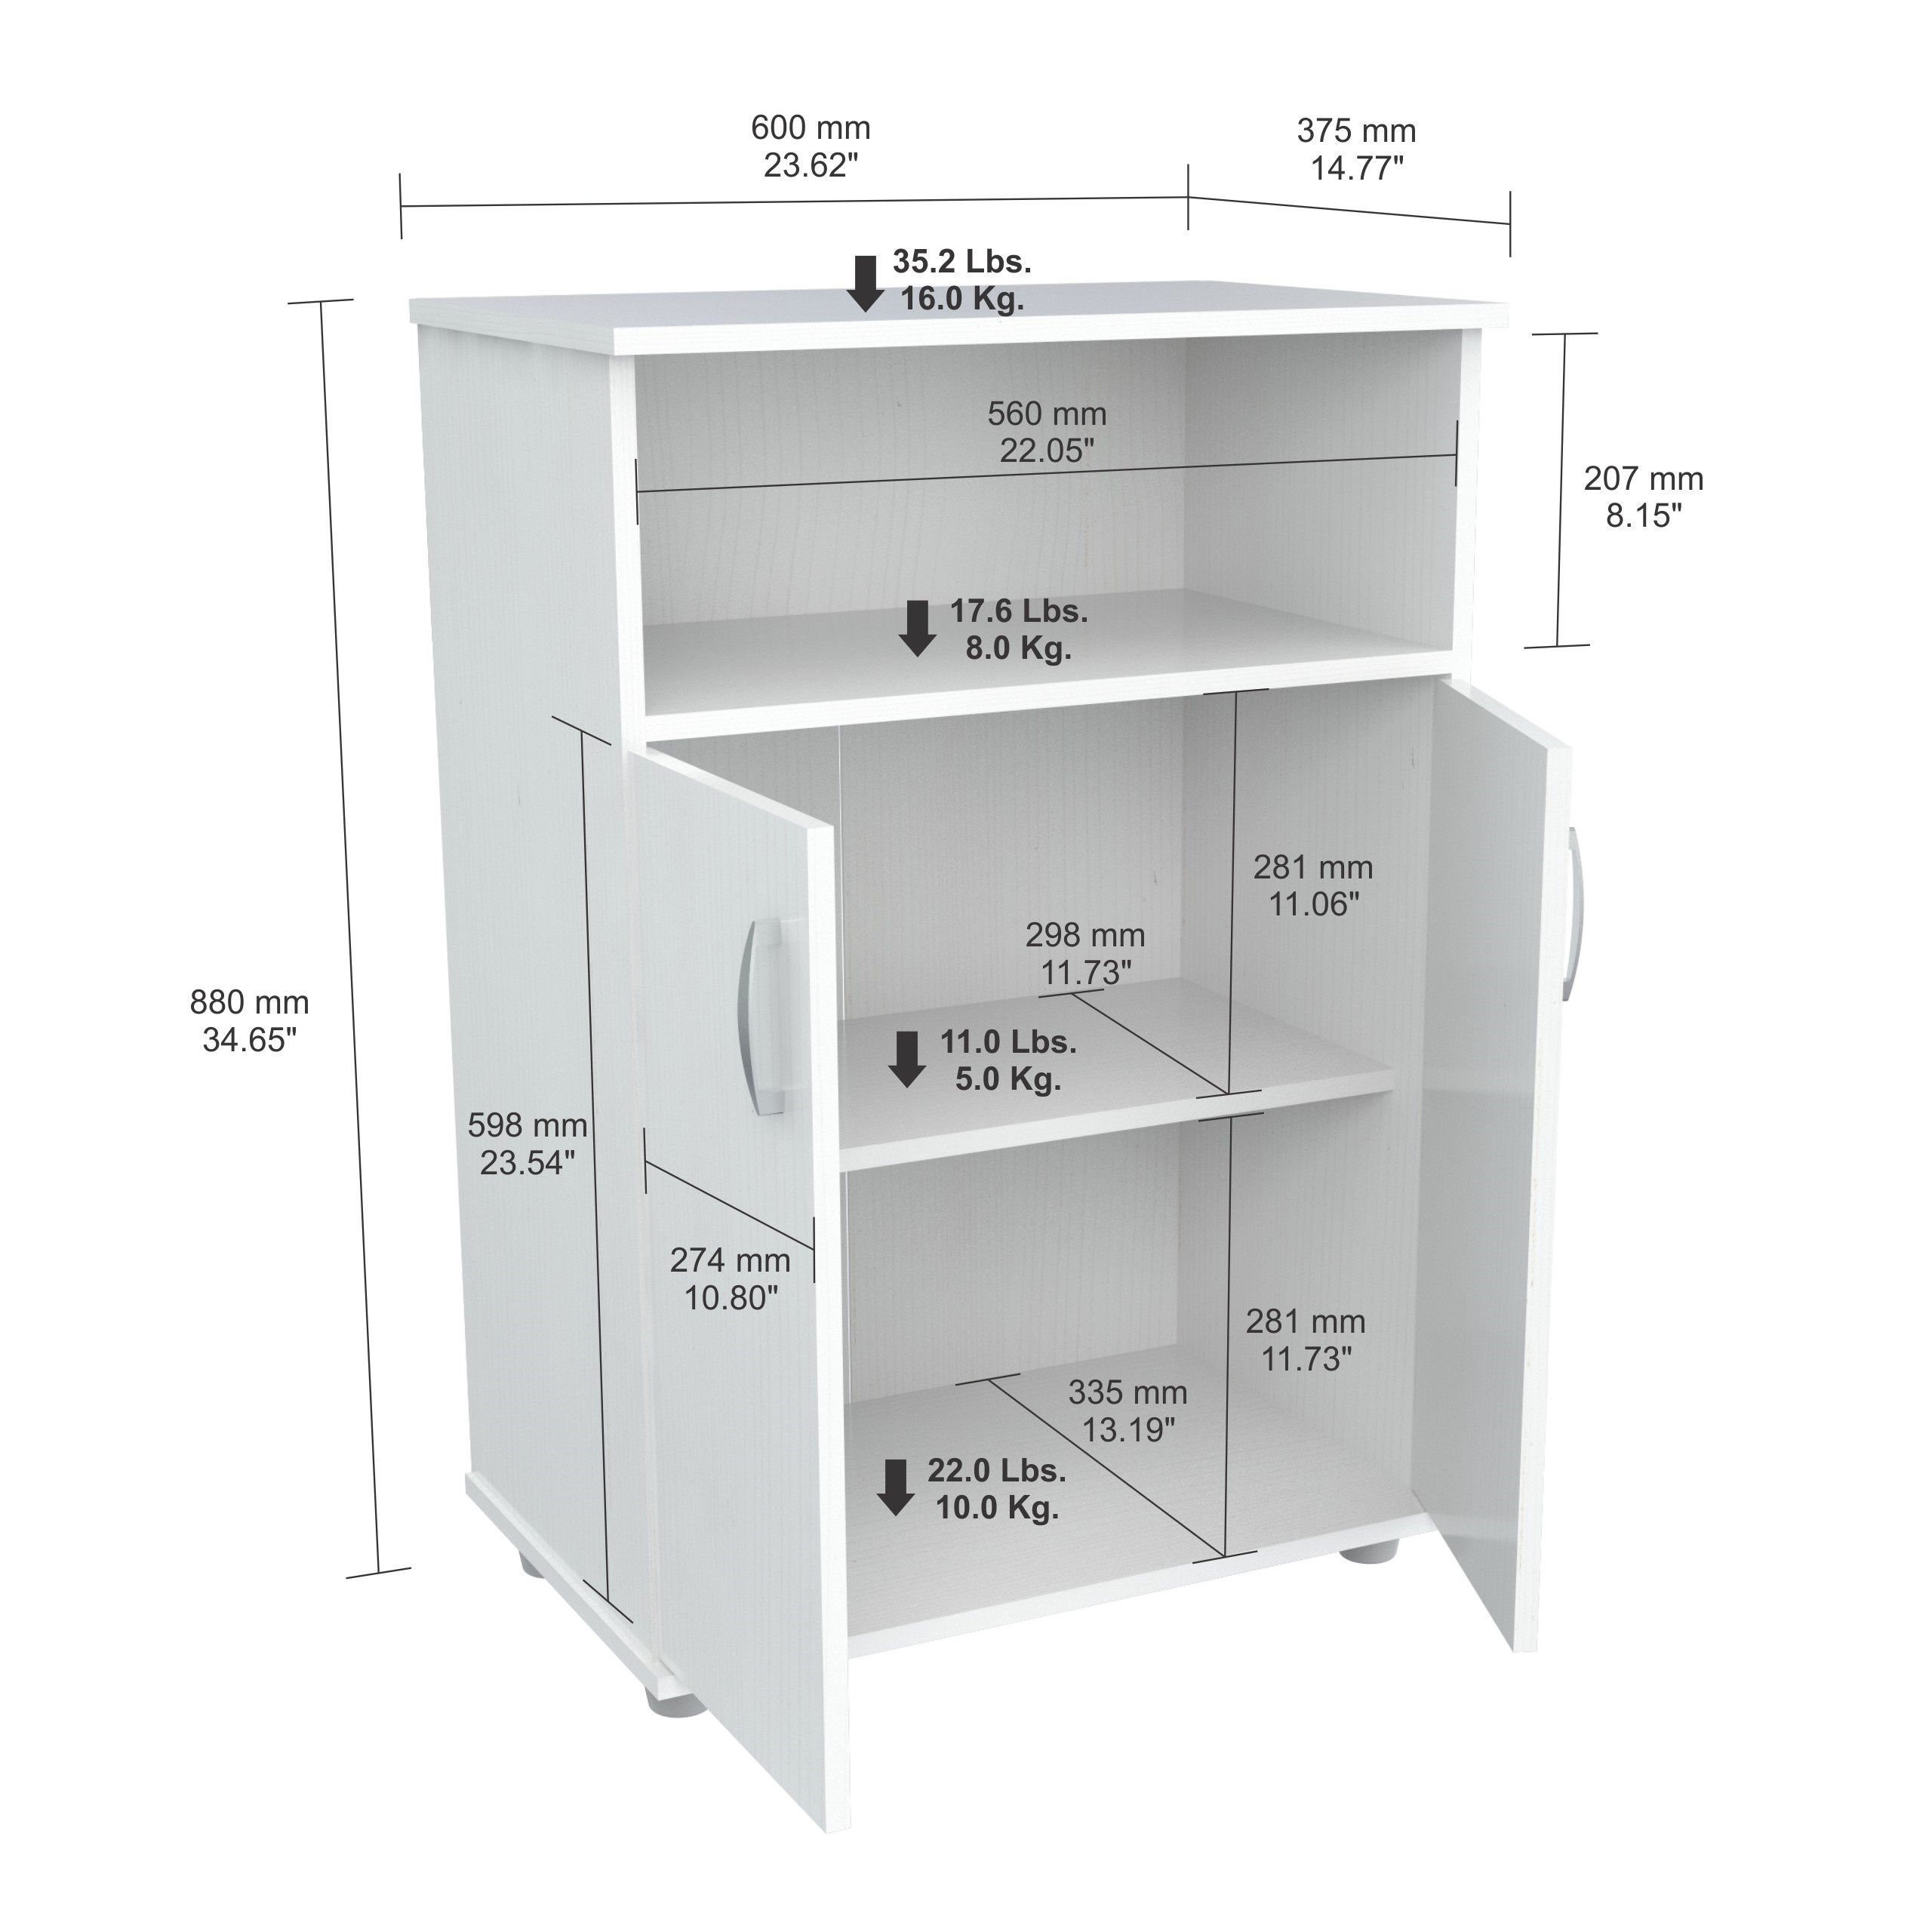 Kitchen Storage Cabinet Off-White (MM-0207). Top Shelf Space for Microwave Oven. 32.87 in High x 23.62 in Wide x 14.96 in Deep - Assembly Required